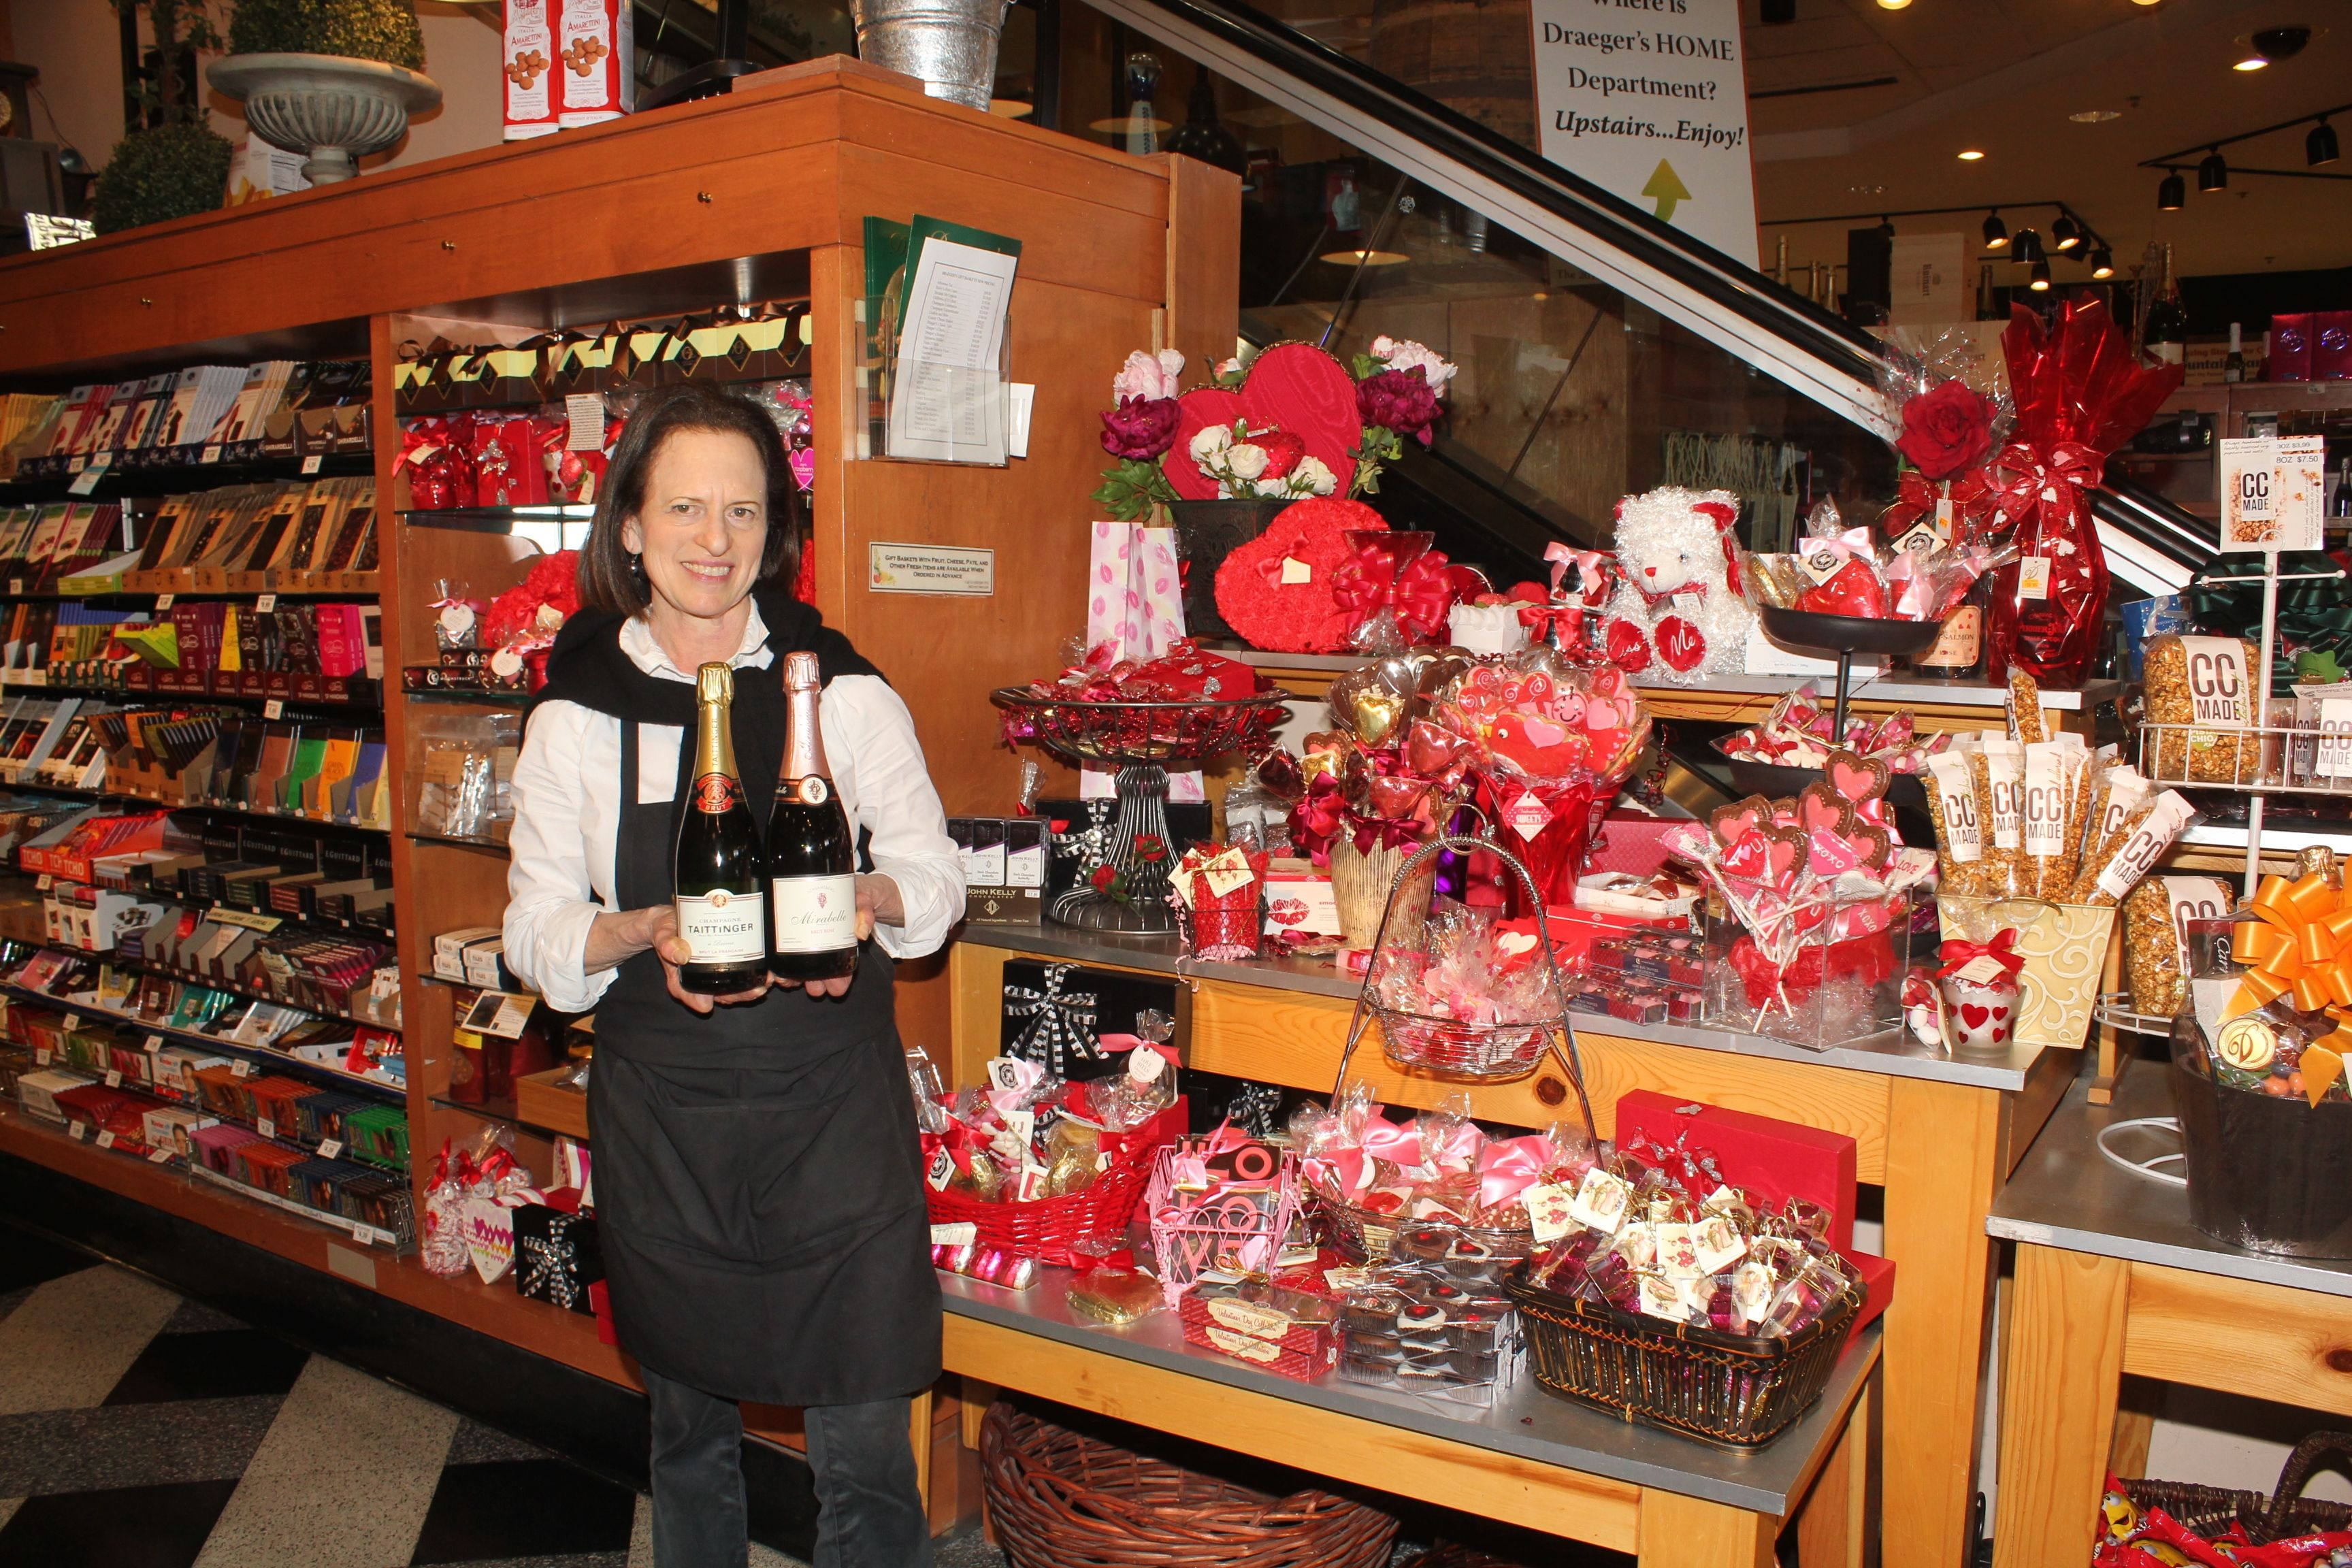 Alexandria Our Candy Buyer At Draeger S San Mateo Has Been Hard At Work Selecting Gorgeous And Of Course Romantic Assortments Fo Sparklers Say Hi Valentines